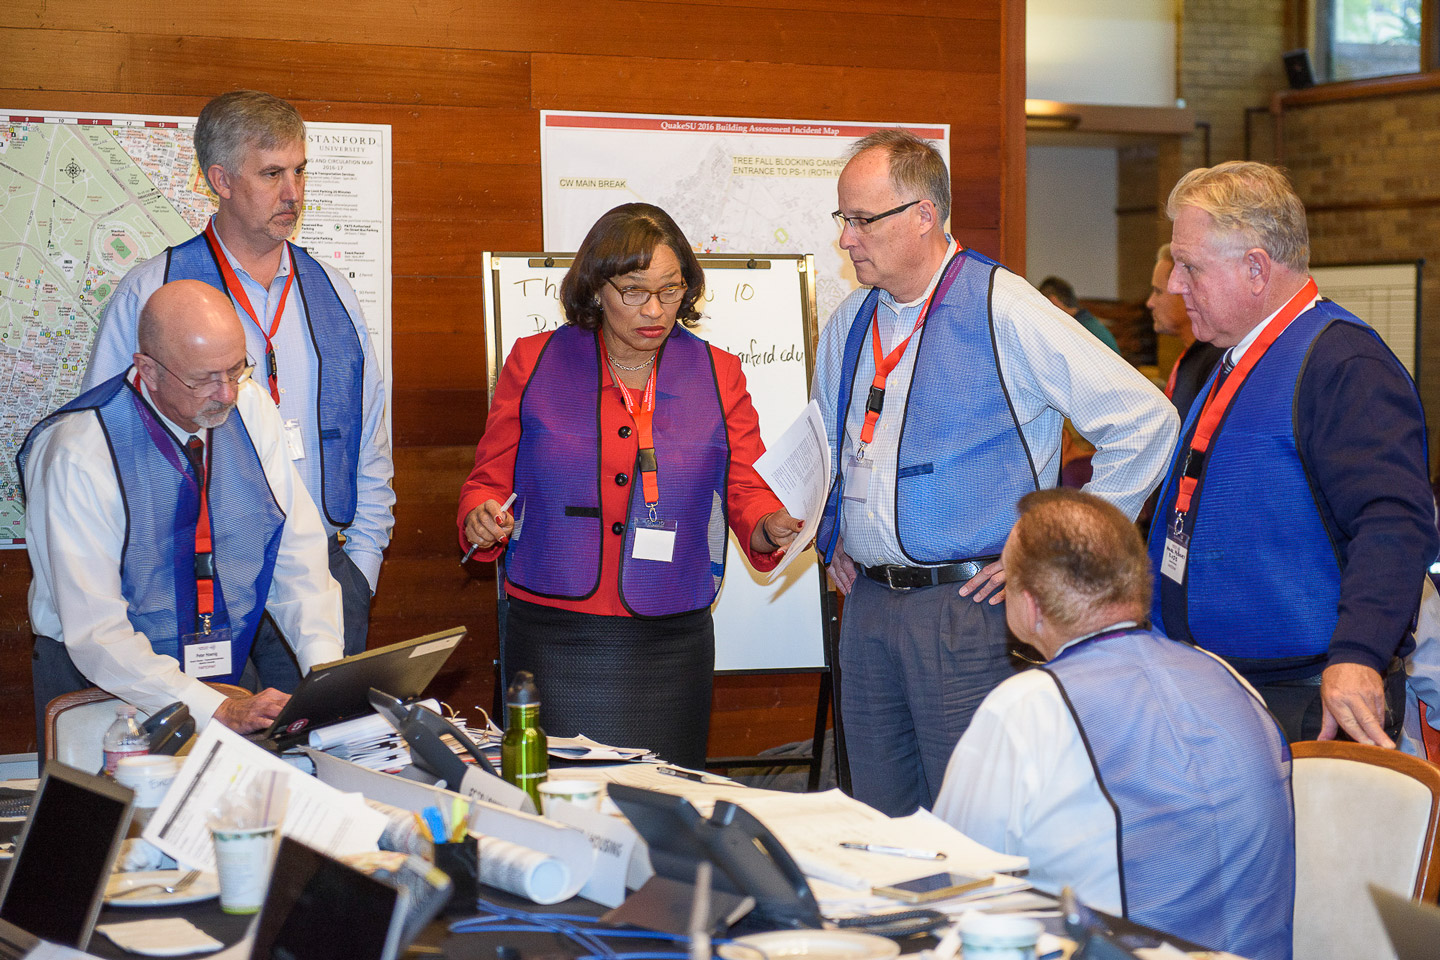 Senior associate vice provost Shirley Everett, center, speaks with other administrators at the QuakeSU 2016 exercise in the Emergency Operations Center.